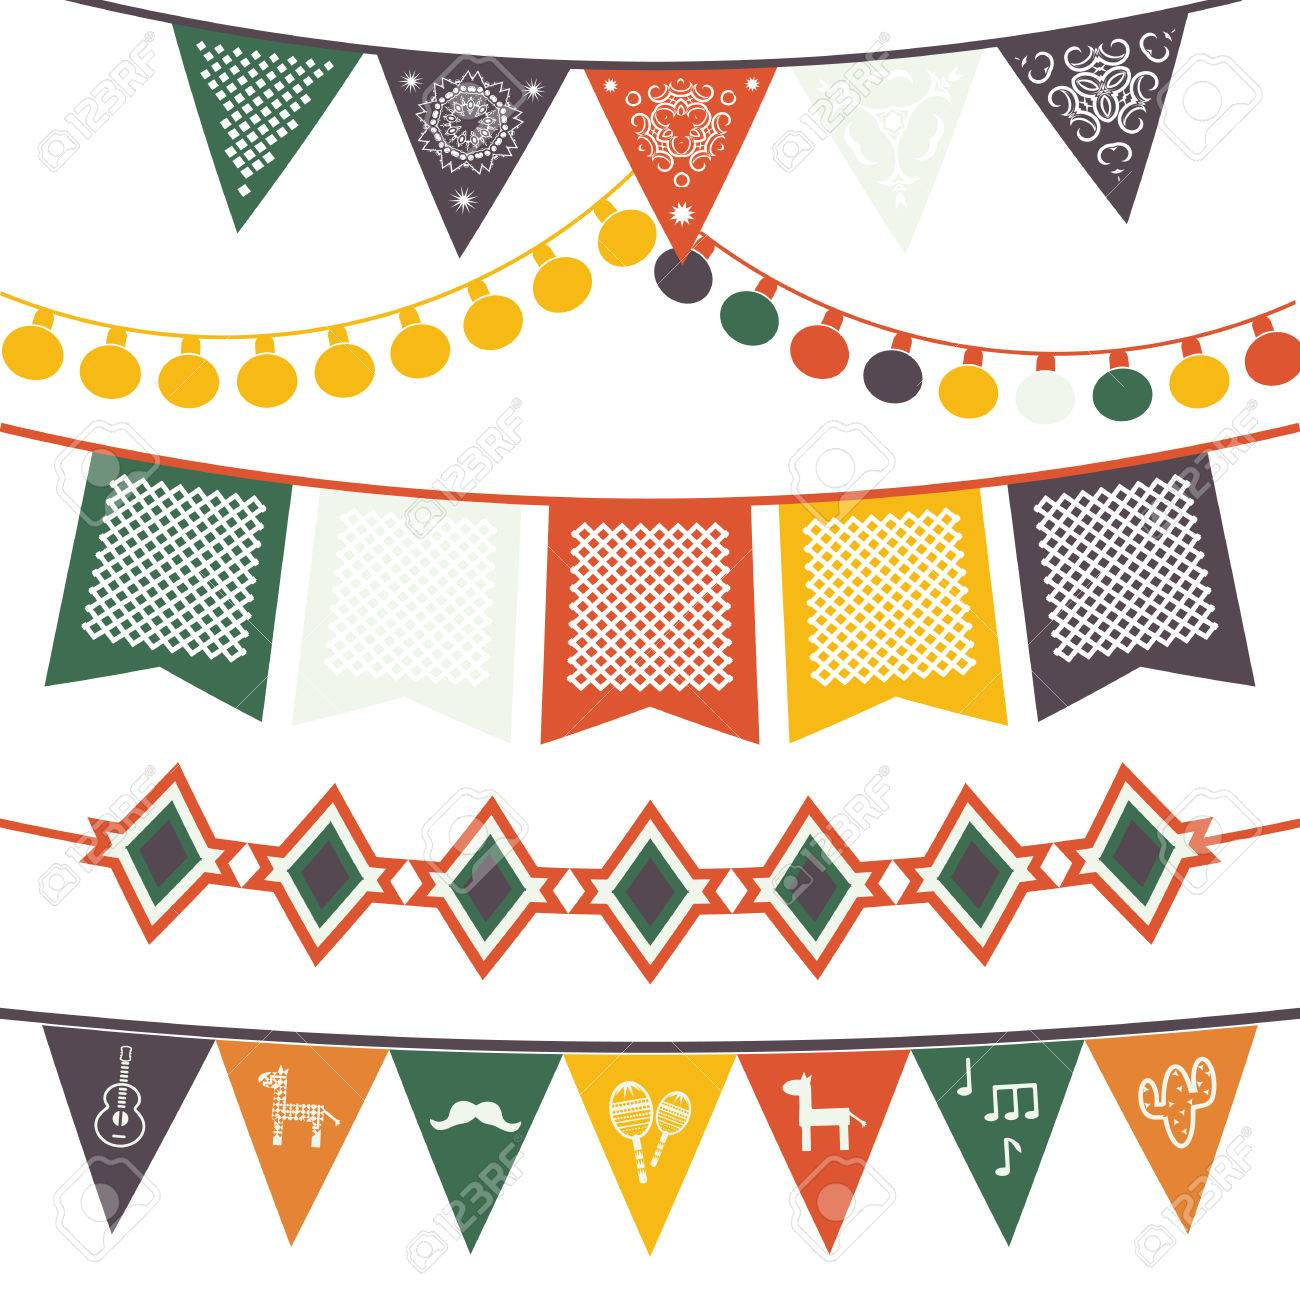 hanging festive mexican banners flags electric lights garlands rh 123rf com